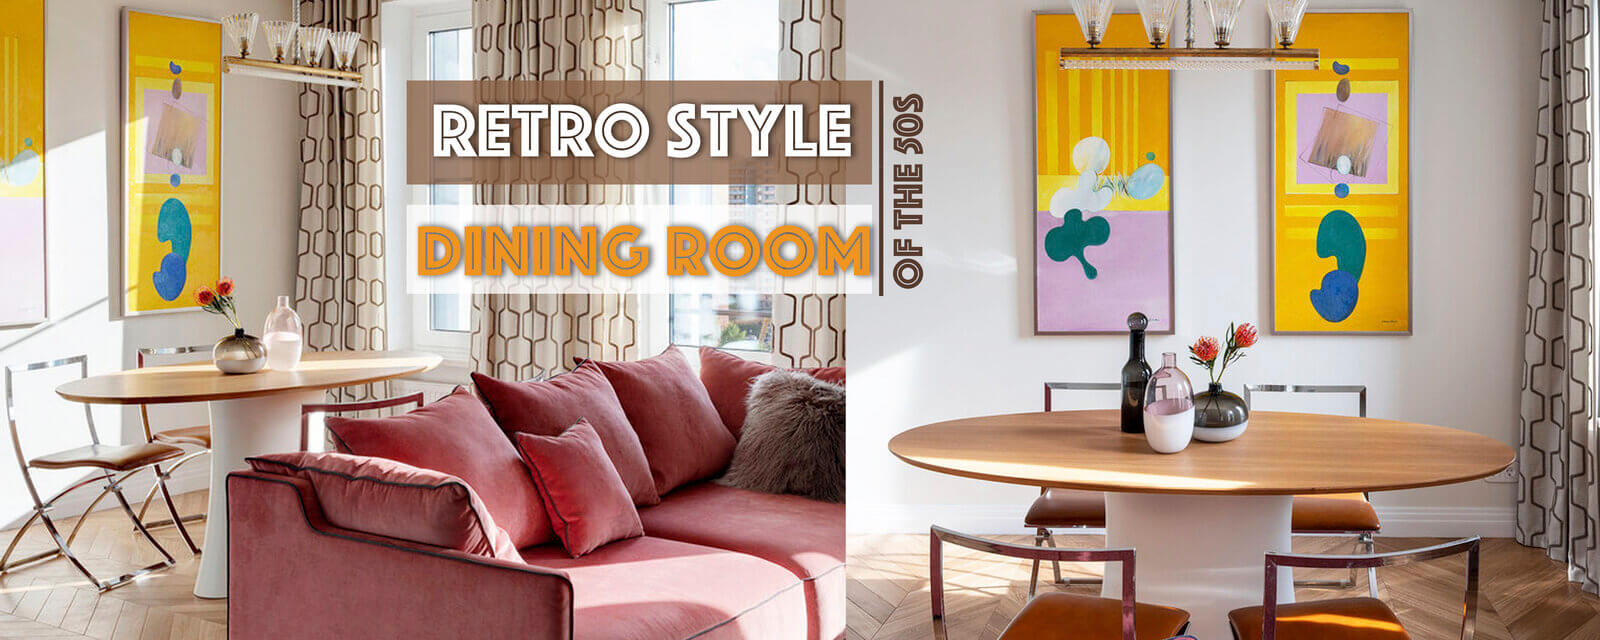 Retro Style of the 50s | Dining Room